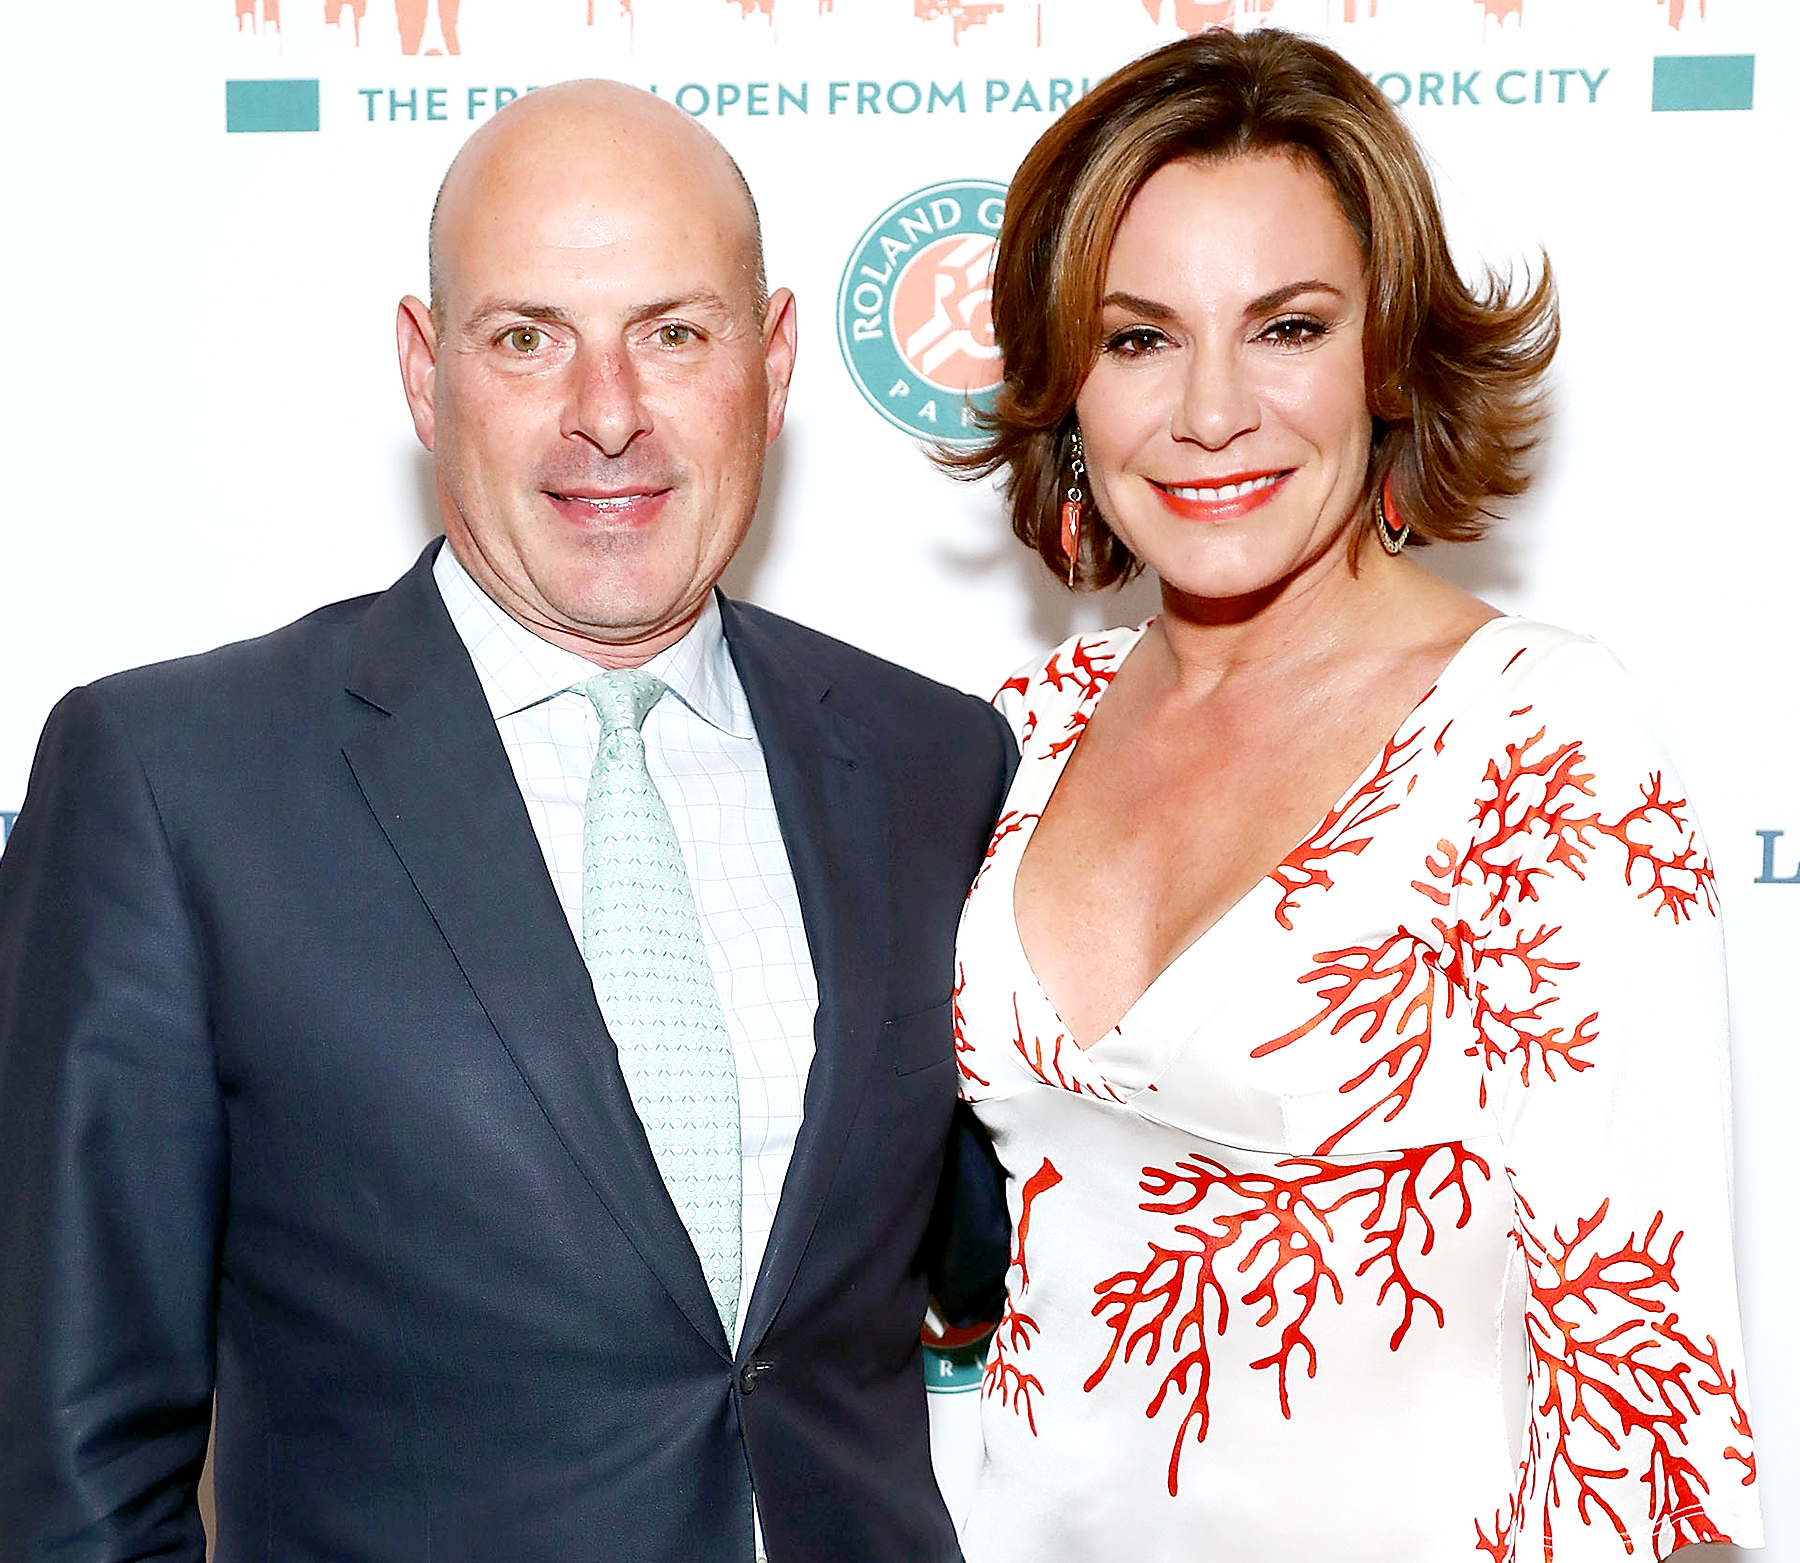 Tom D'Agostino Jr. and Luann de Lesseps attend the Roland-Garros reception at French Consulate in New York City on June 8, 2017.